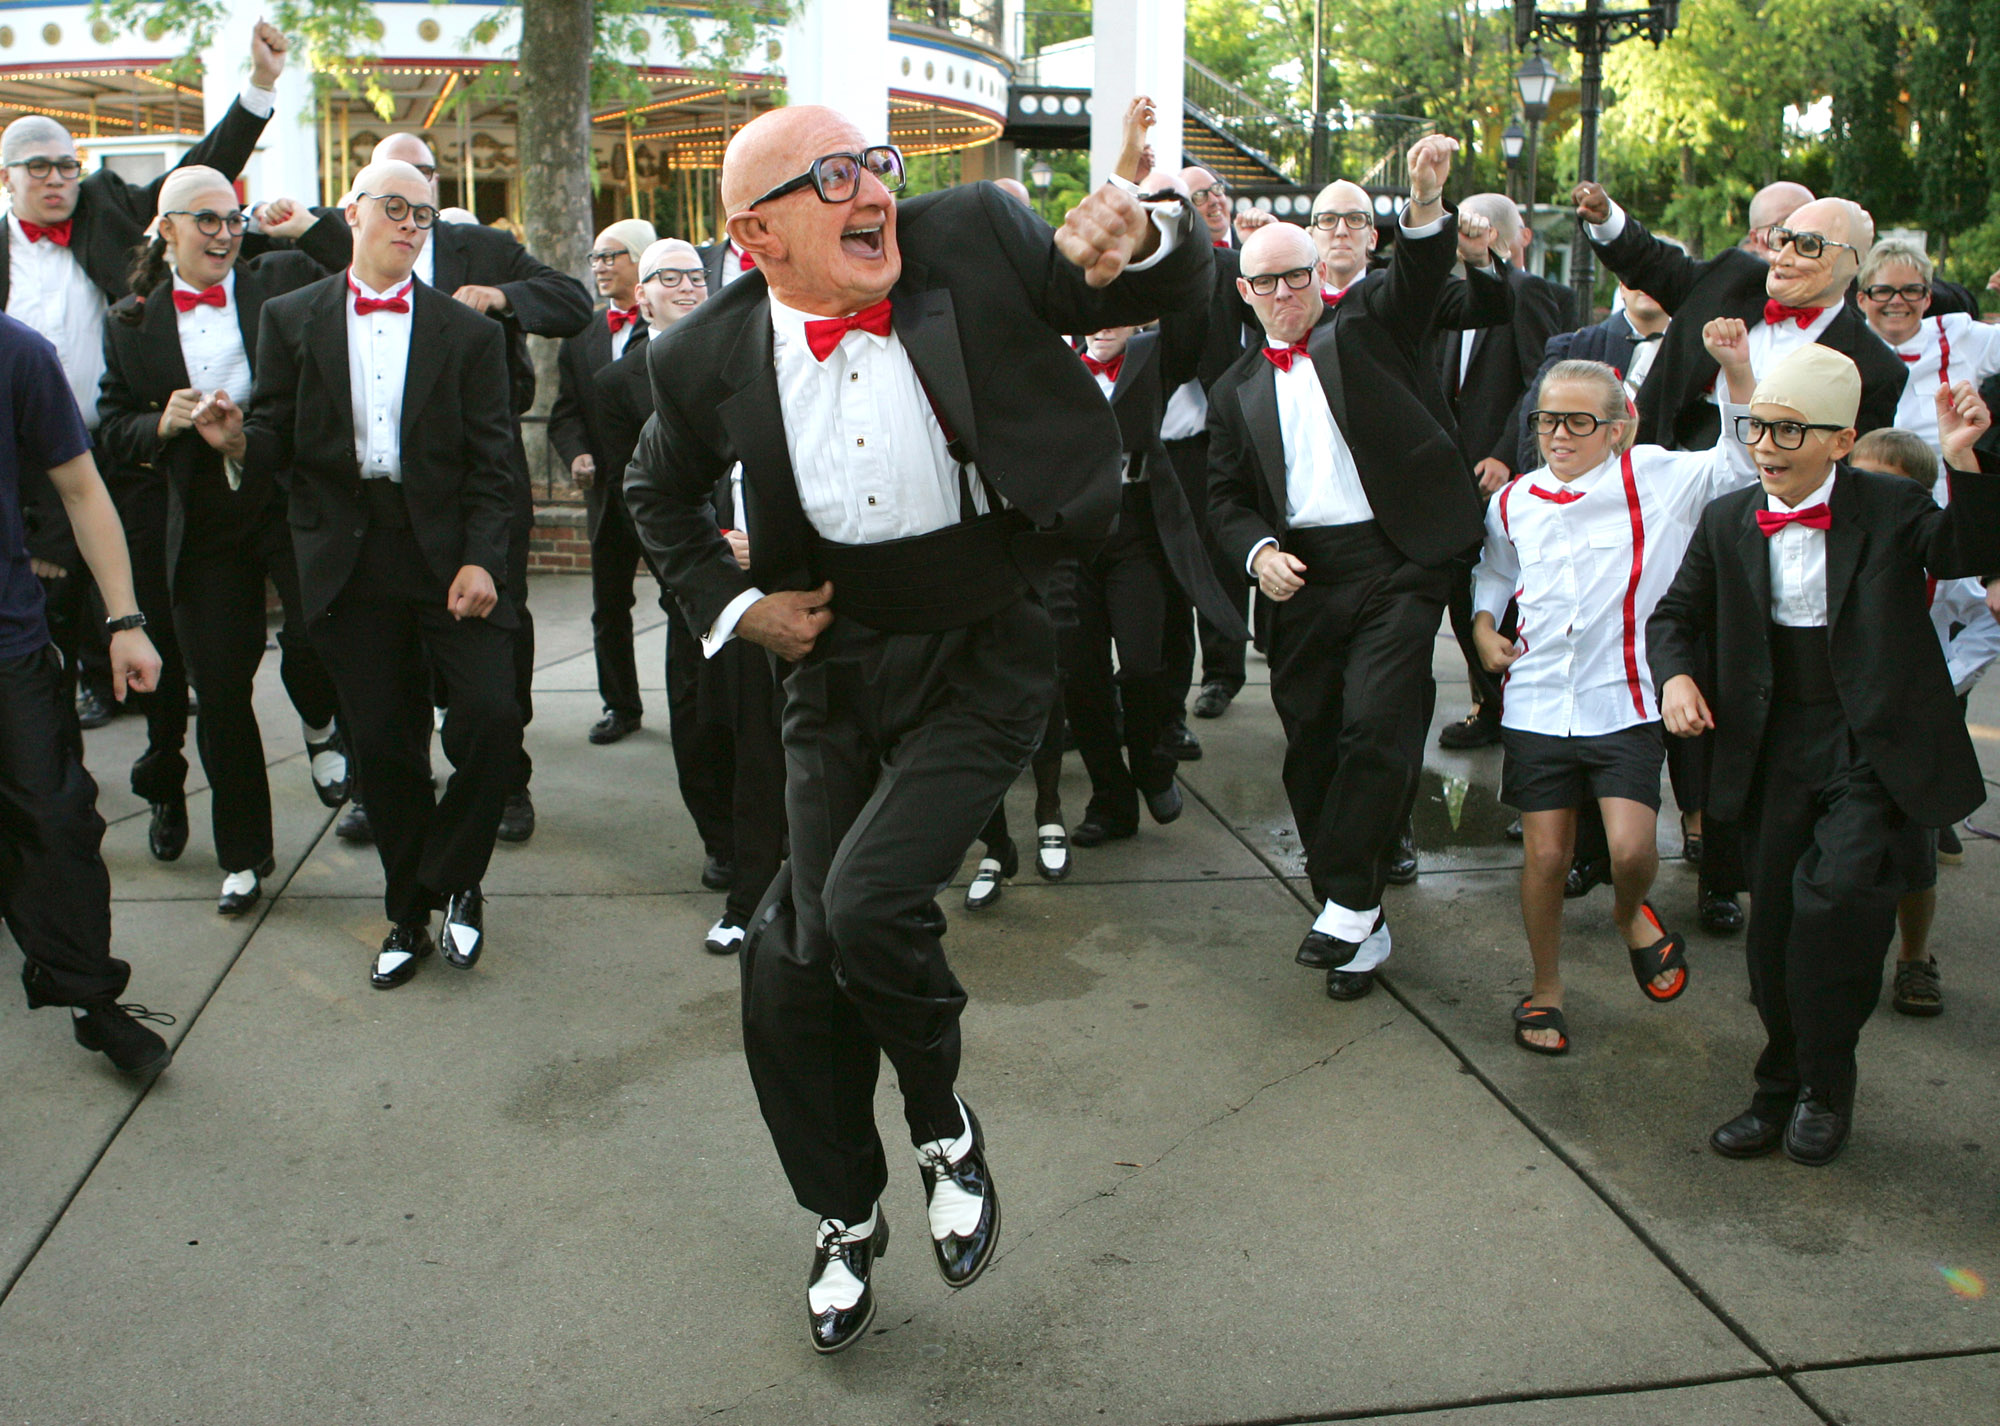 Six Flags Dancing Old Guy Mr Six